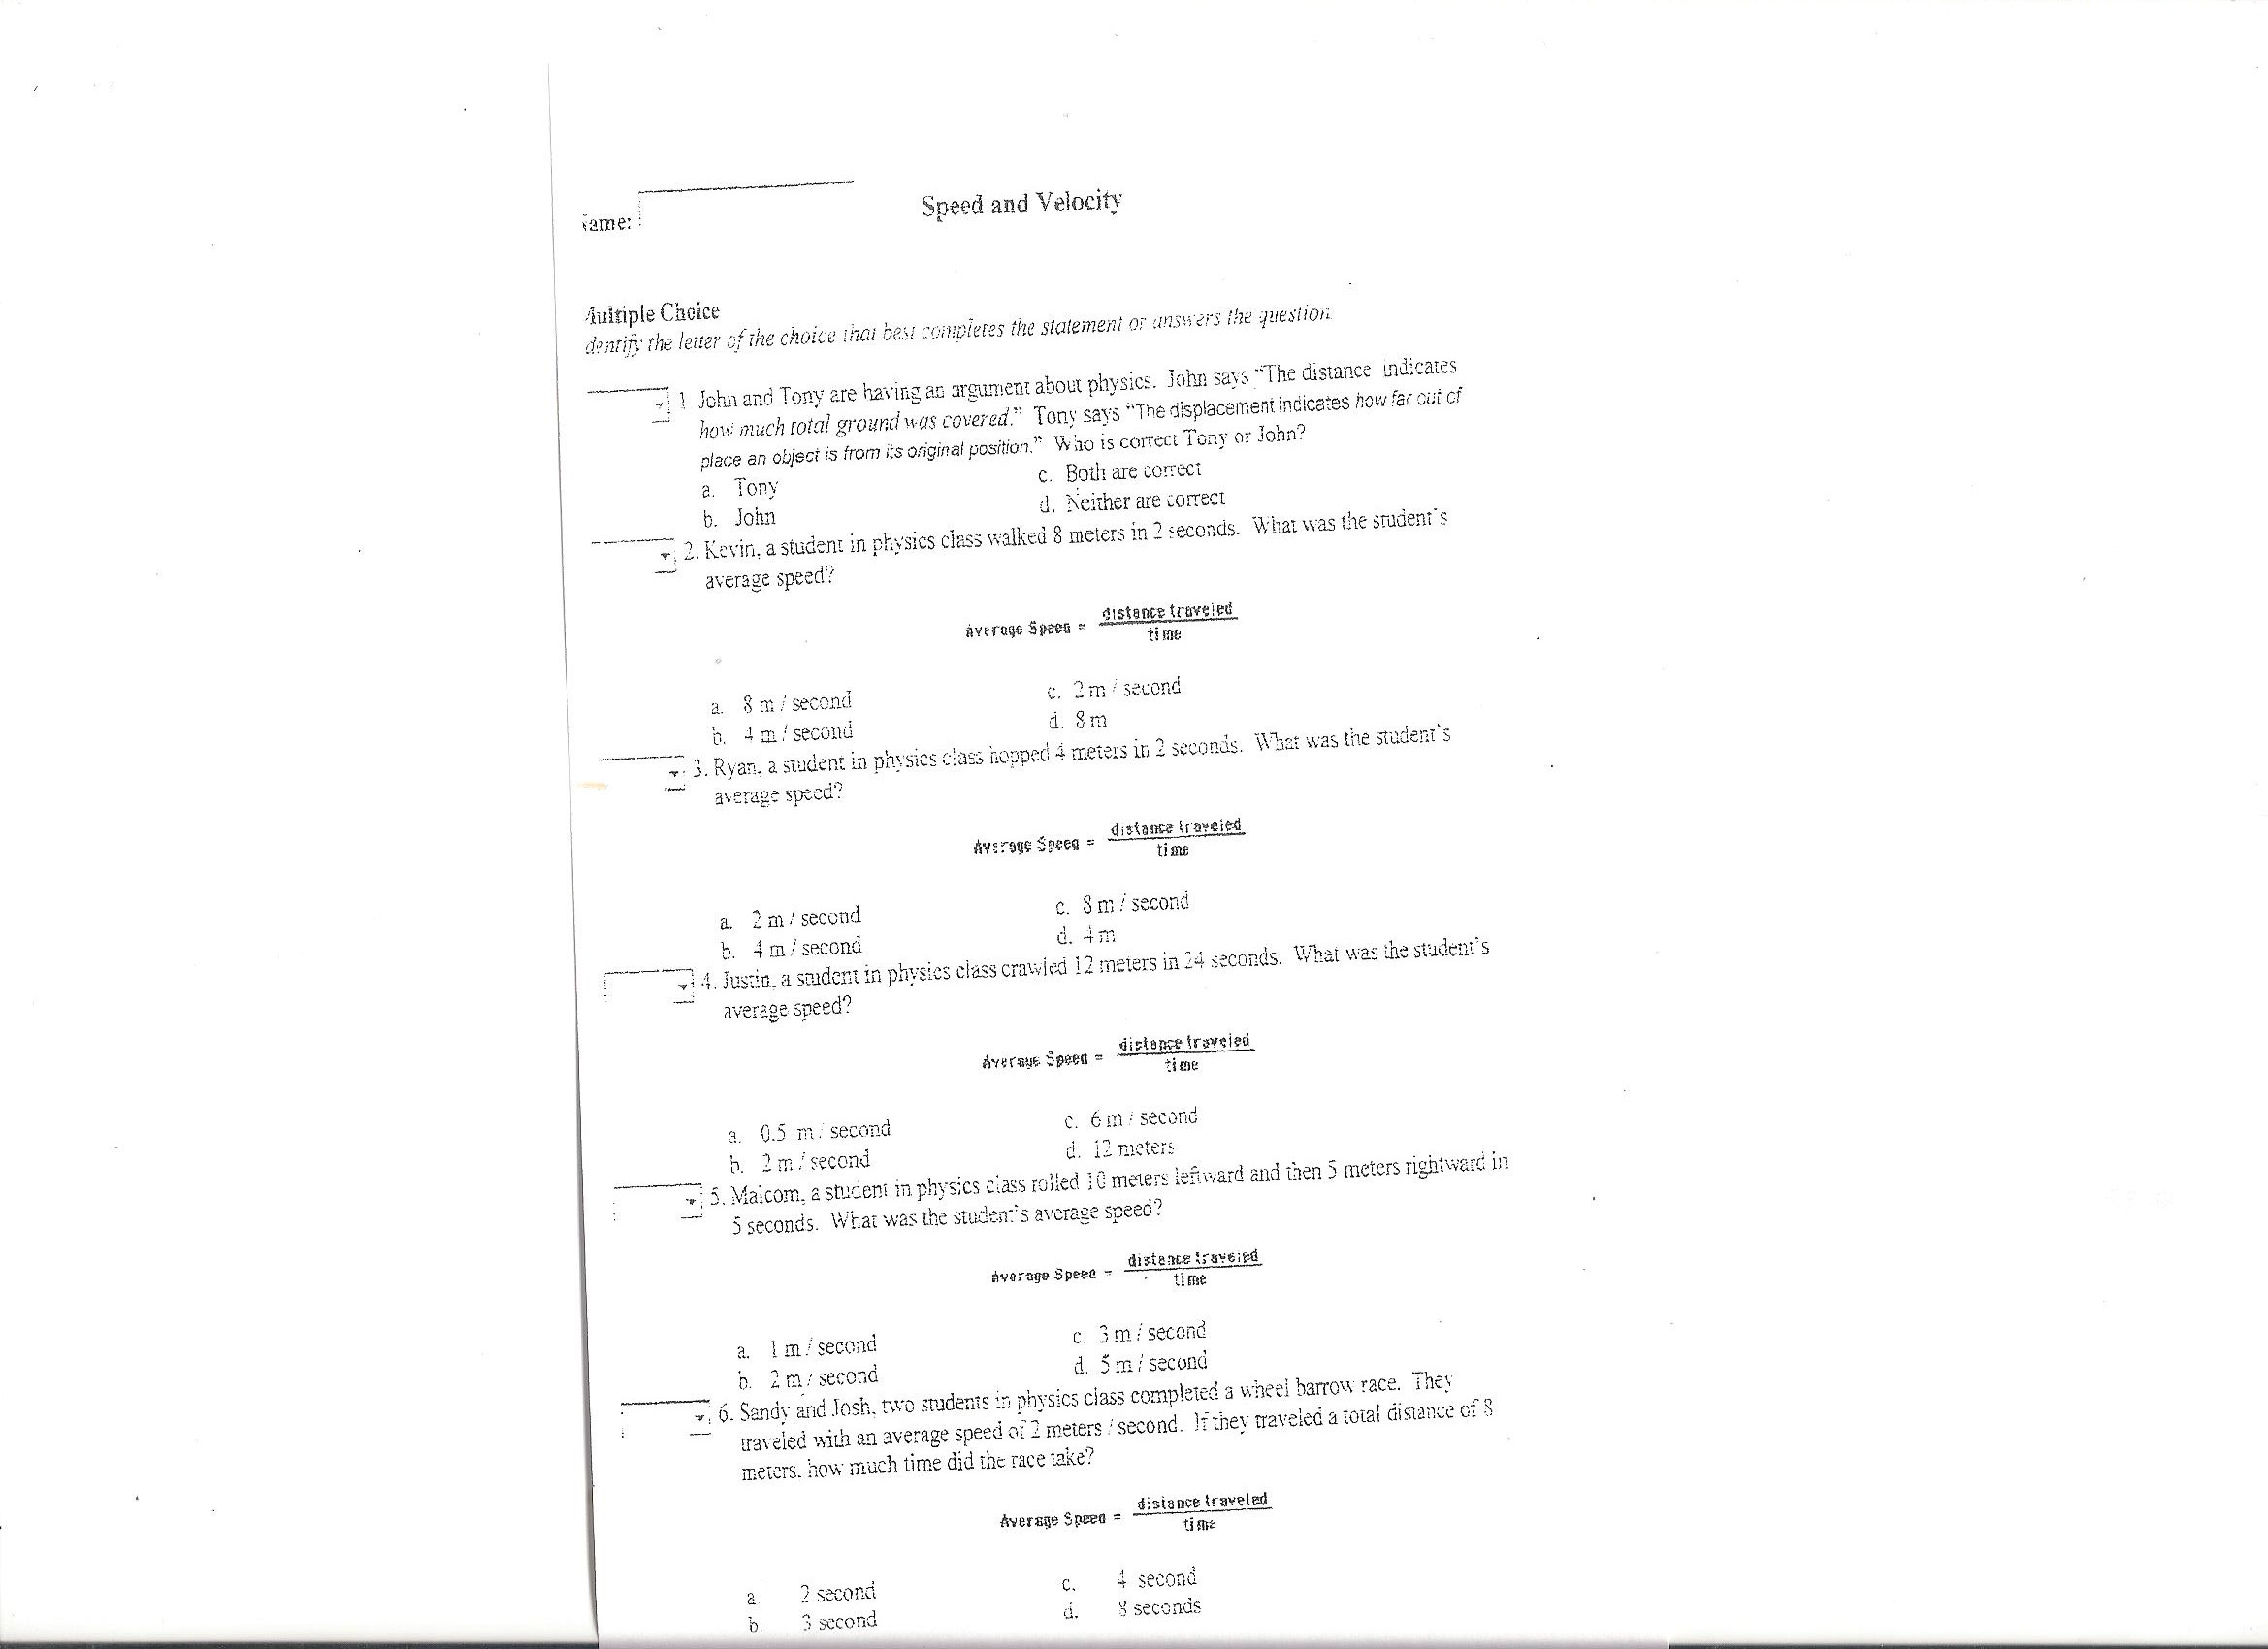 Worksheets Distance And Displacement Worksheet With Answers distance and displacement worksheet with answers precommunity worksheets homework physics download file